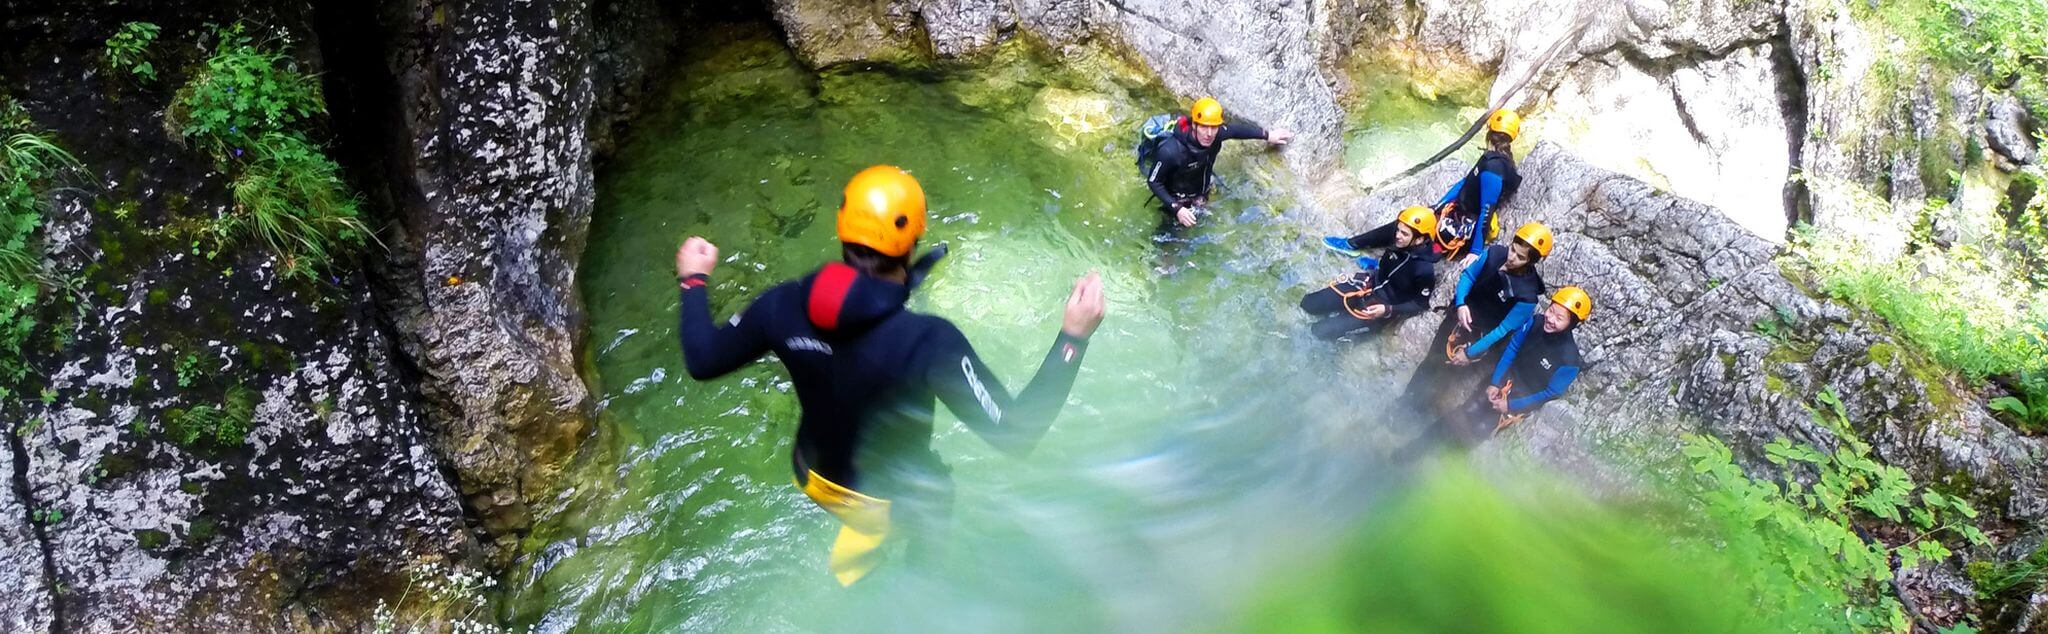 Canyoning in Vizcaya